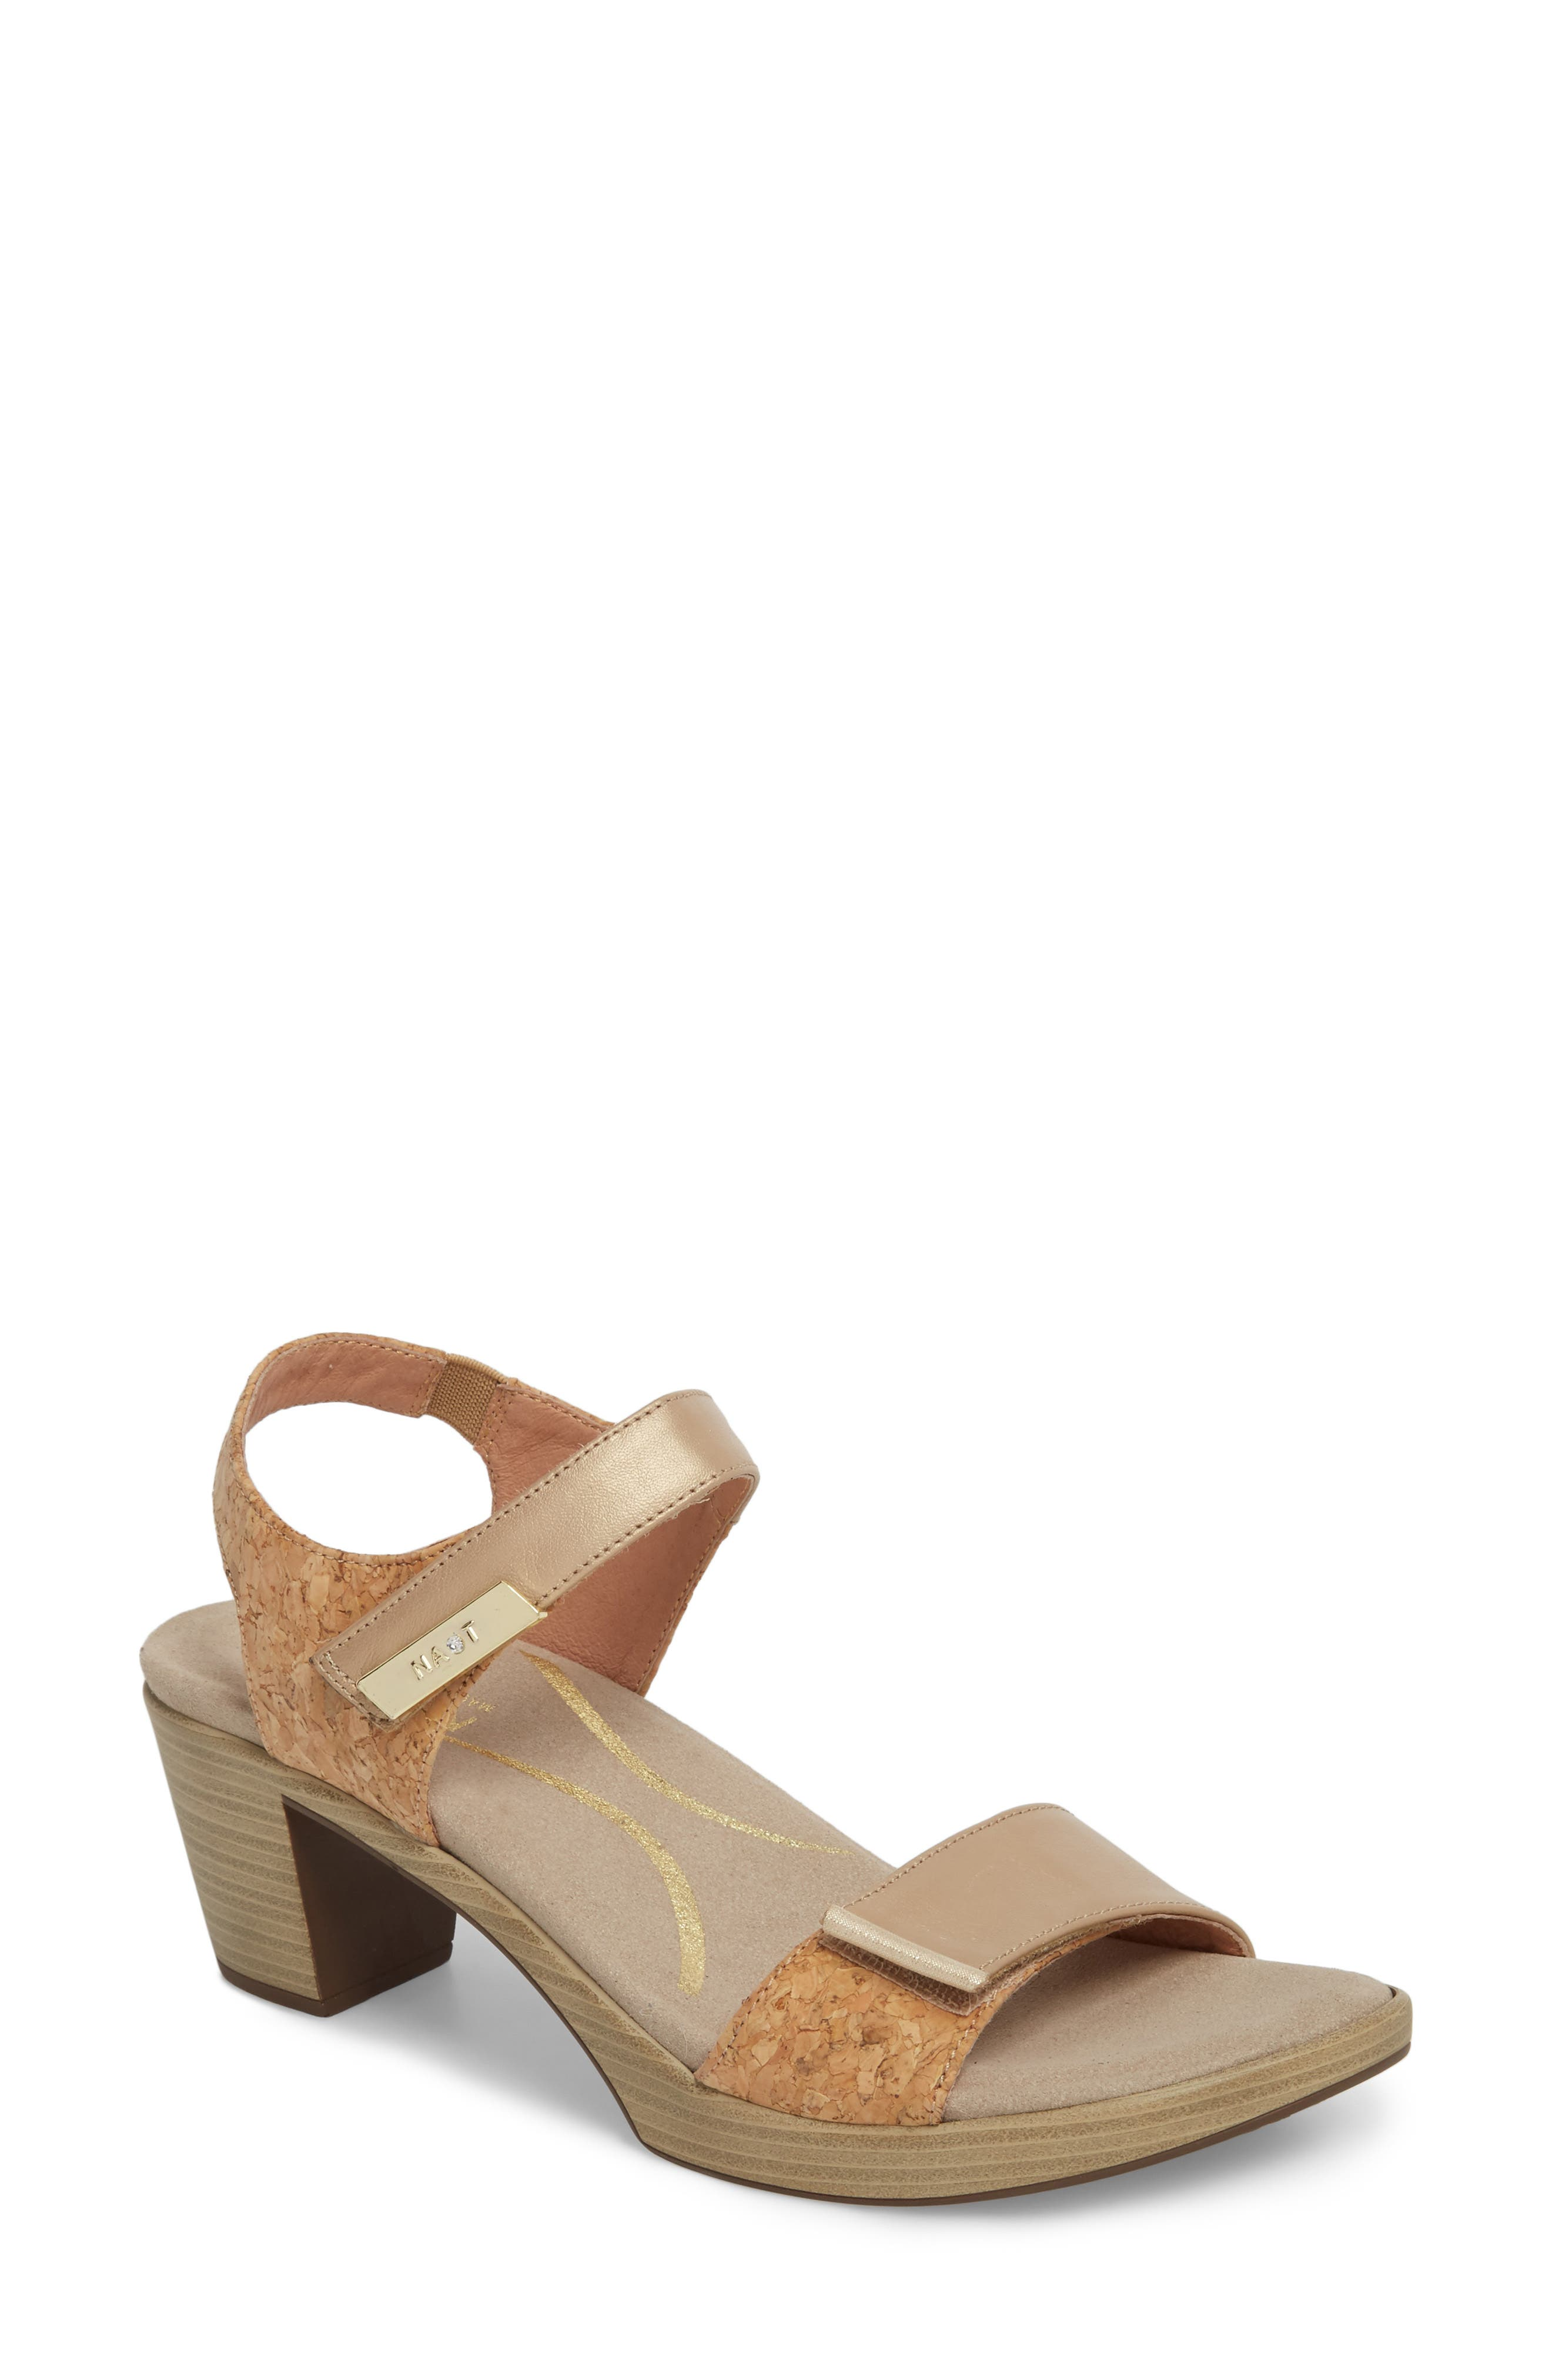 NAOT 'Intact' Sandal, Main, color, CHAMPAGNE LEATHER